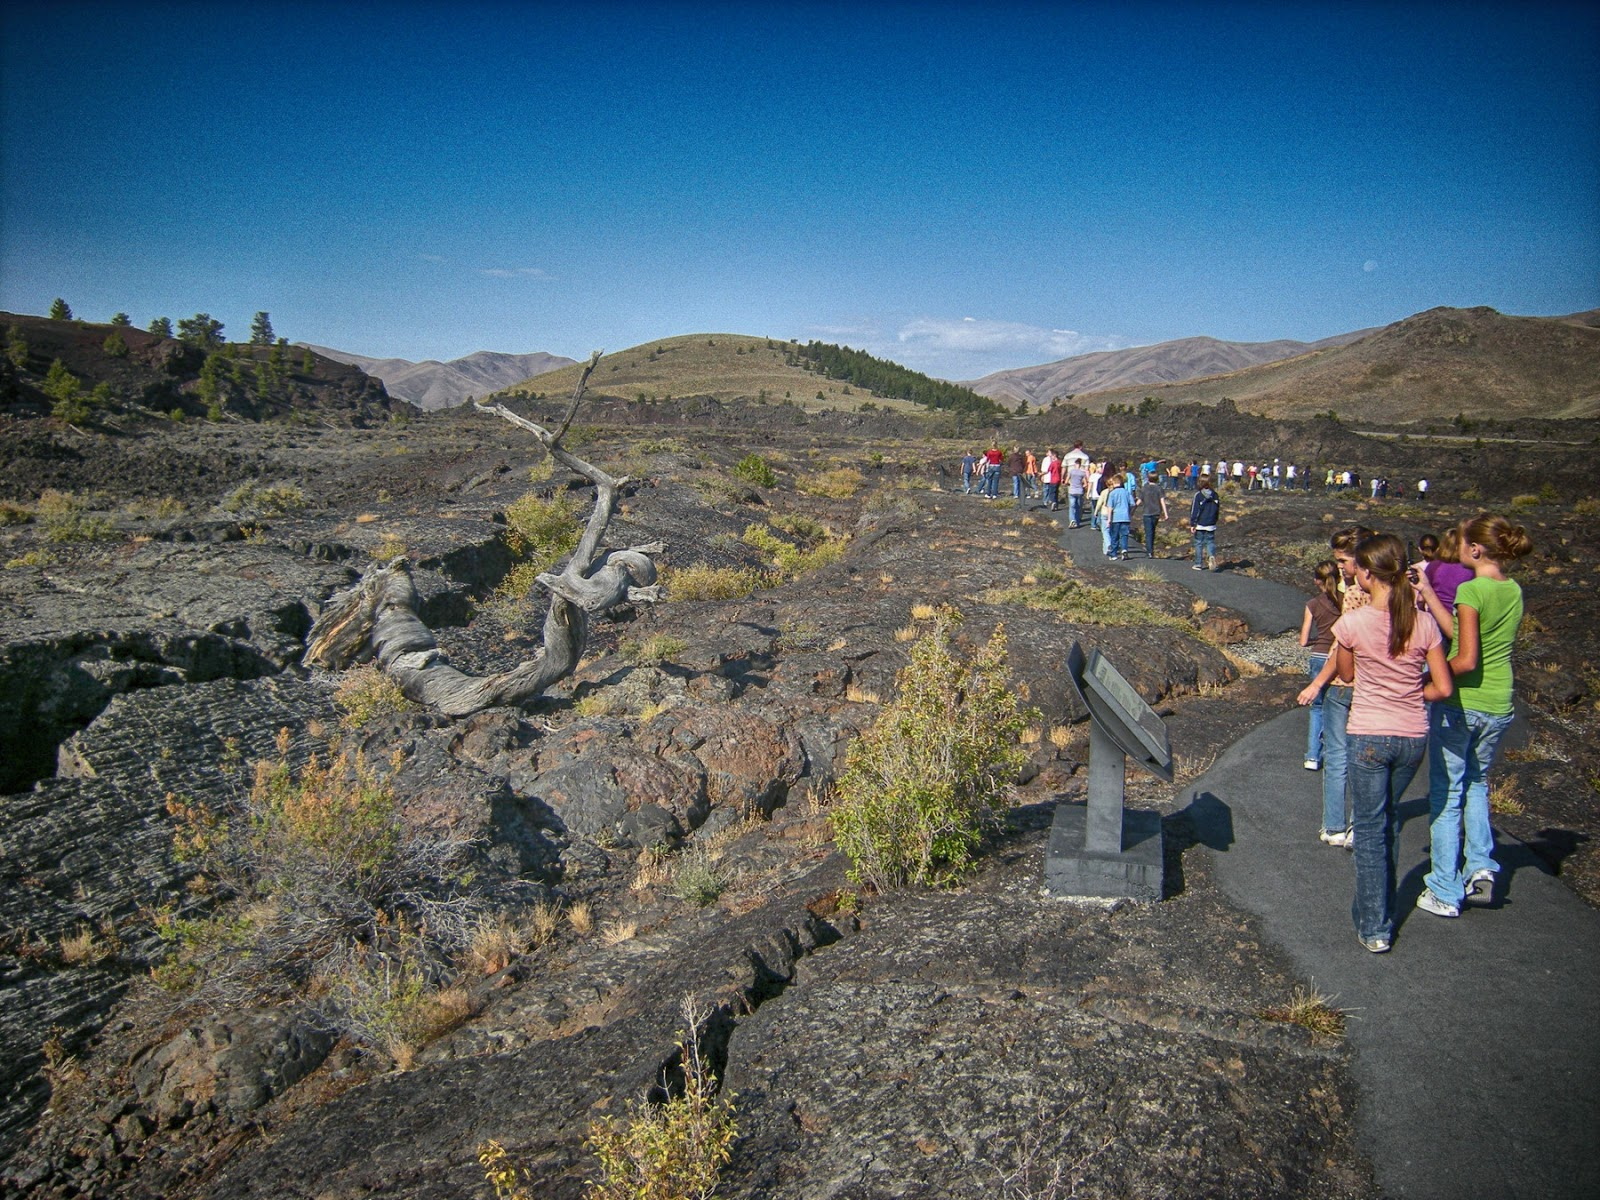 Craters of the Moon National Monument Idaho geology travel trip outdoors volcano volcanic Yellowstone lava basalt fieldtrip vacation destination ©RocDocTravel.com